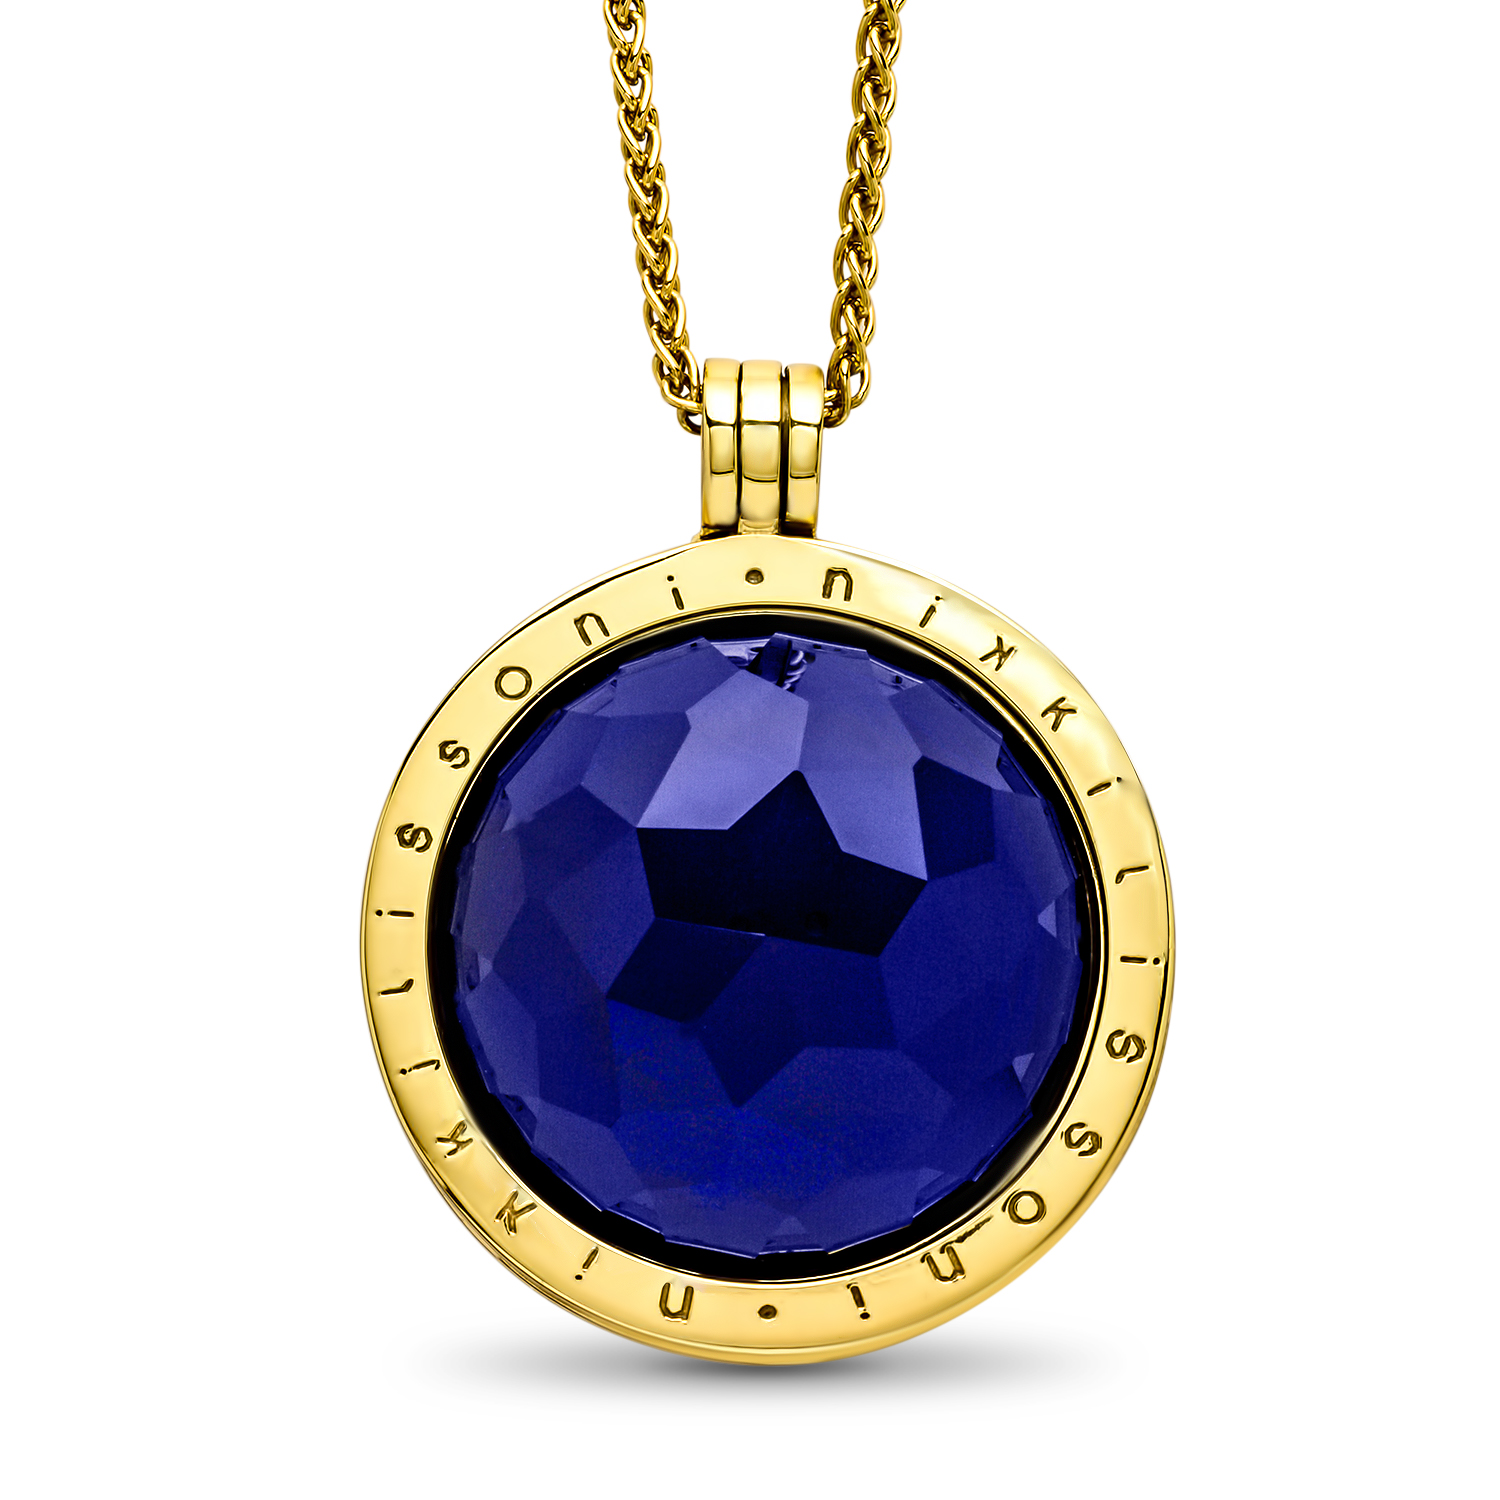 Nikki Lissoni Faceted Dark Blue Glass 33 mm Pendant w/Chain